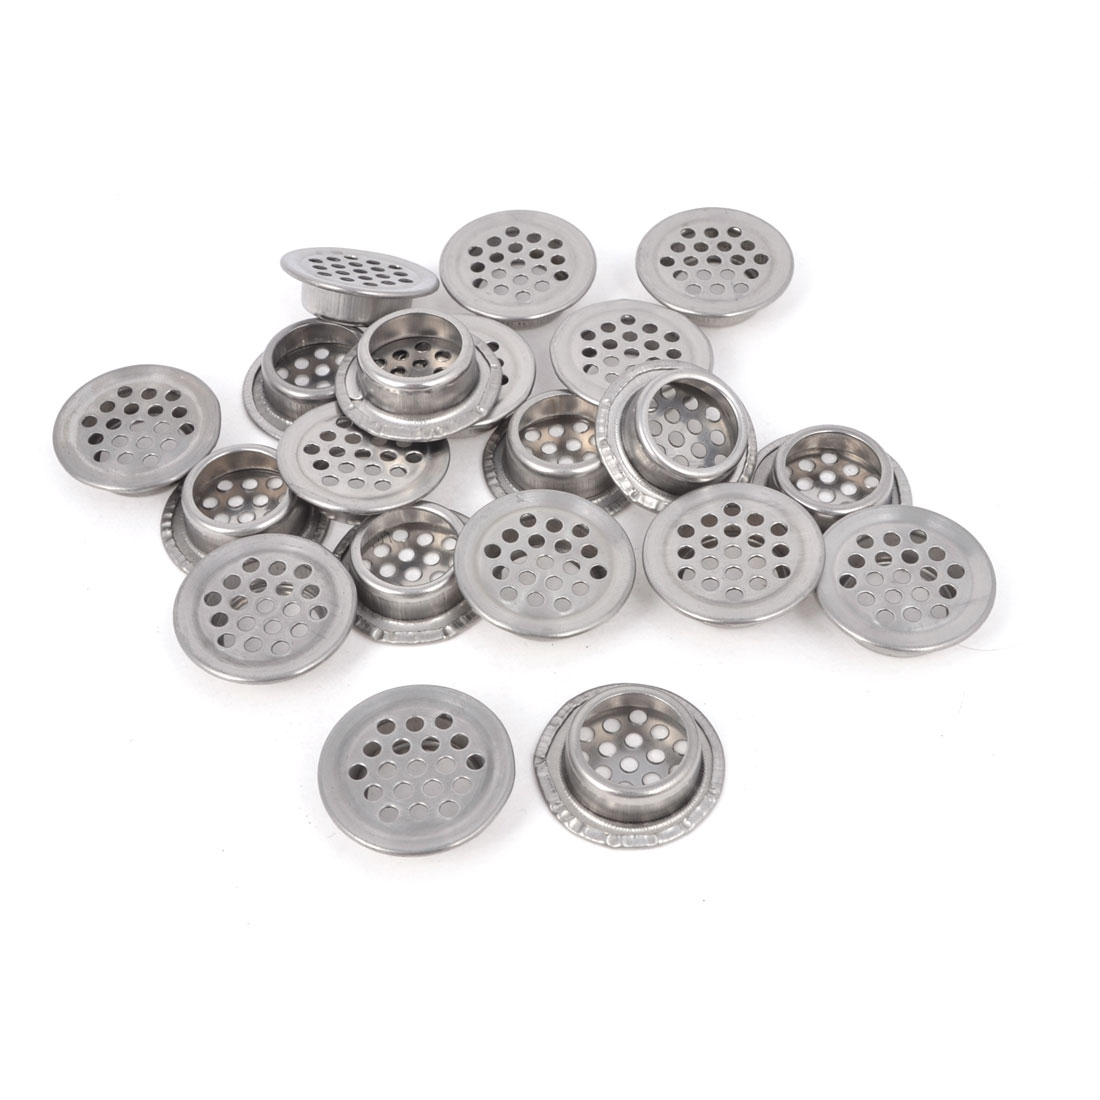 Cabinet 28mm Round Shaped Stainless Steel Perforated Air Vent Hole Ventilation Louver 20 Pcs